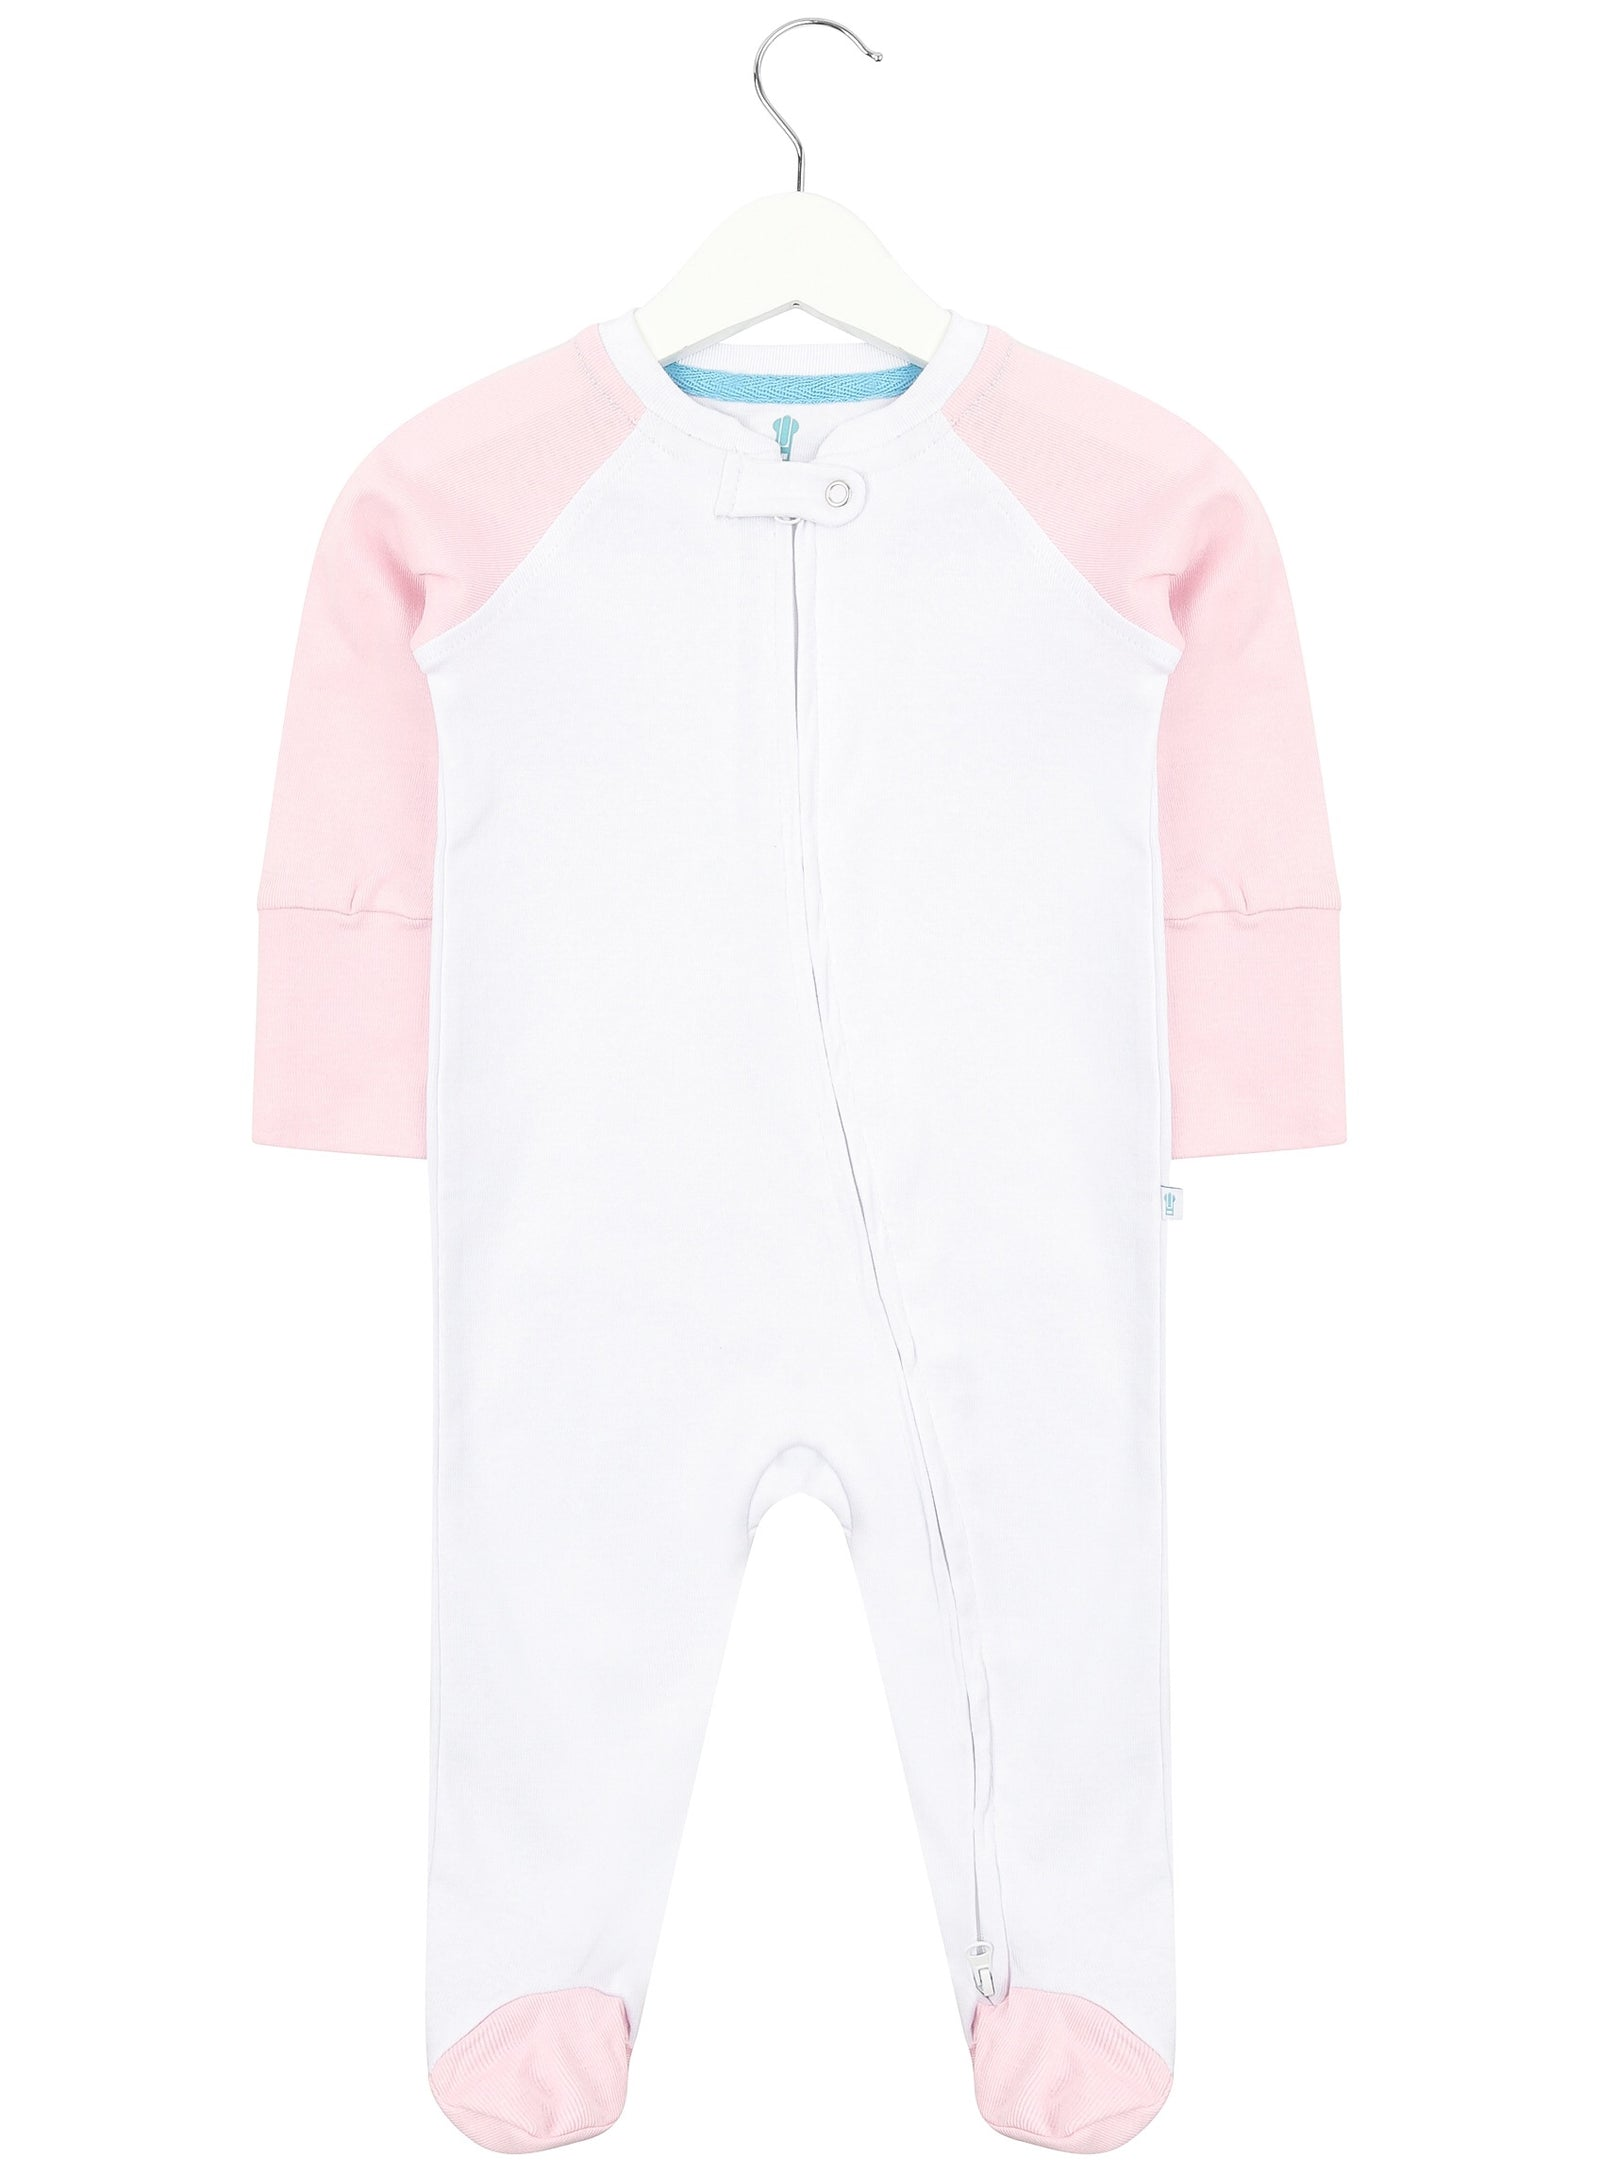 White and Baby Pink Zipped Babygrow